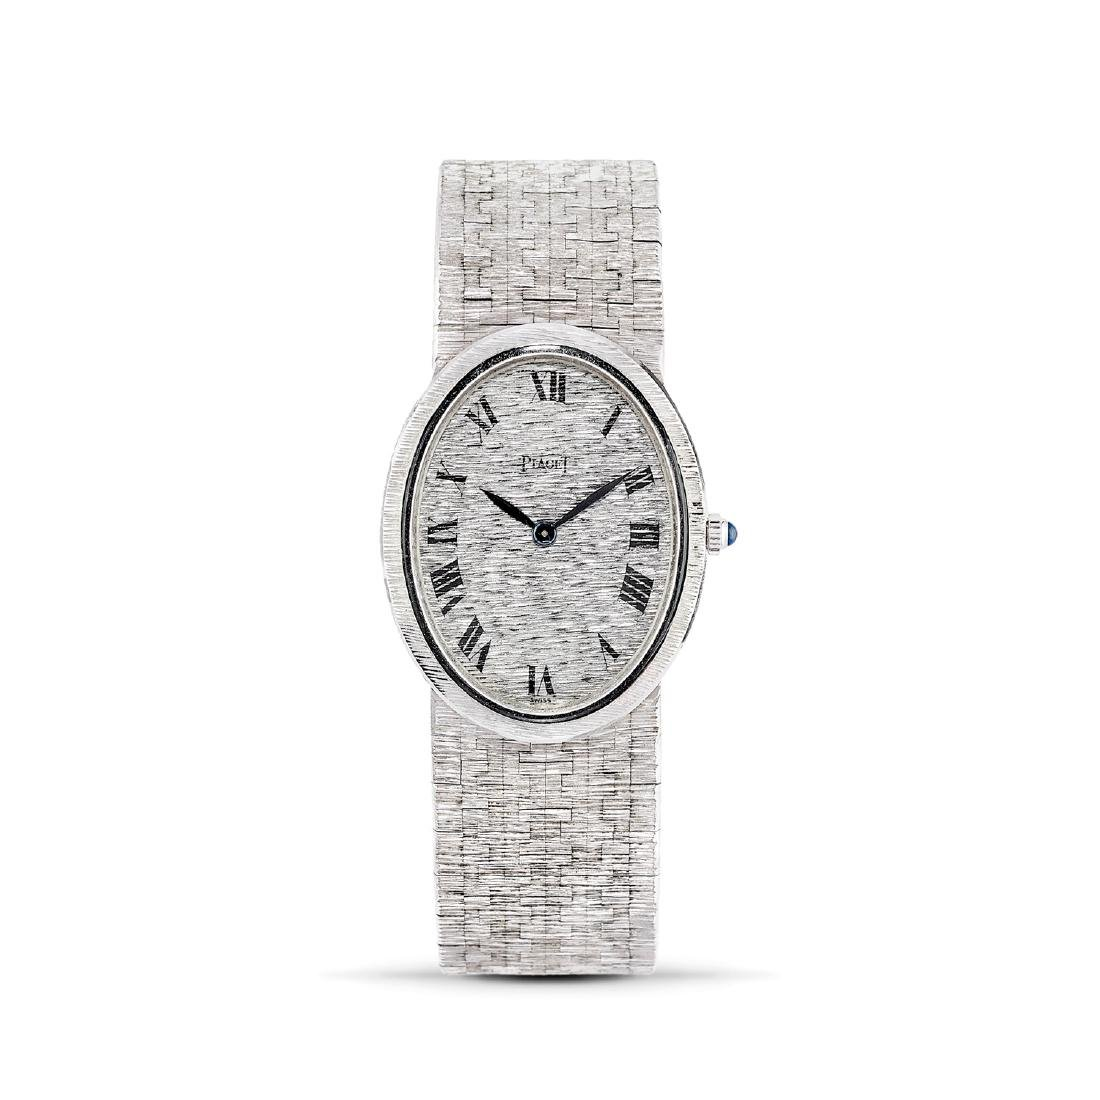 Piaget  - A 18K white gold Piaget lady's wristwatch